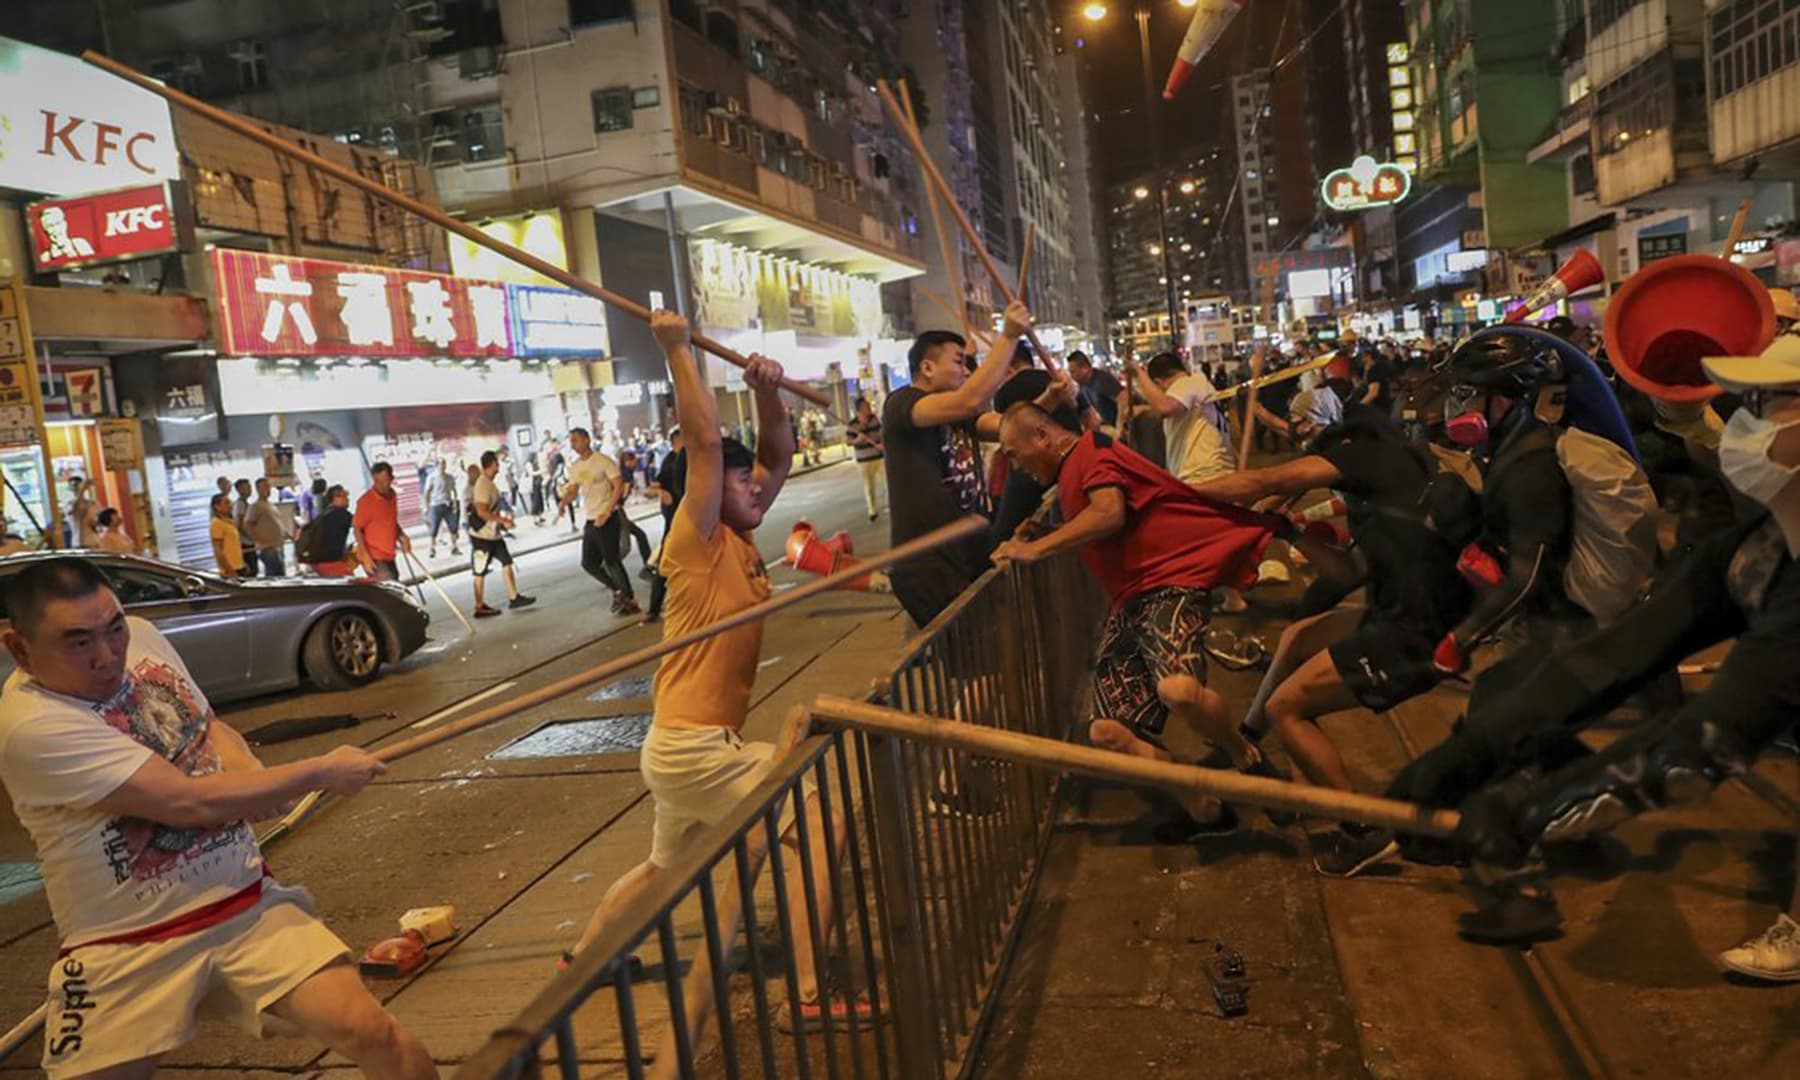 In this Aug 5, 2019, photo, protesters wearing black shirt (R) fight with a group of men wielding wooden poles on a street during the anti-extradition bill protest at a neighbourhood in Hong Kong. — AP